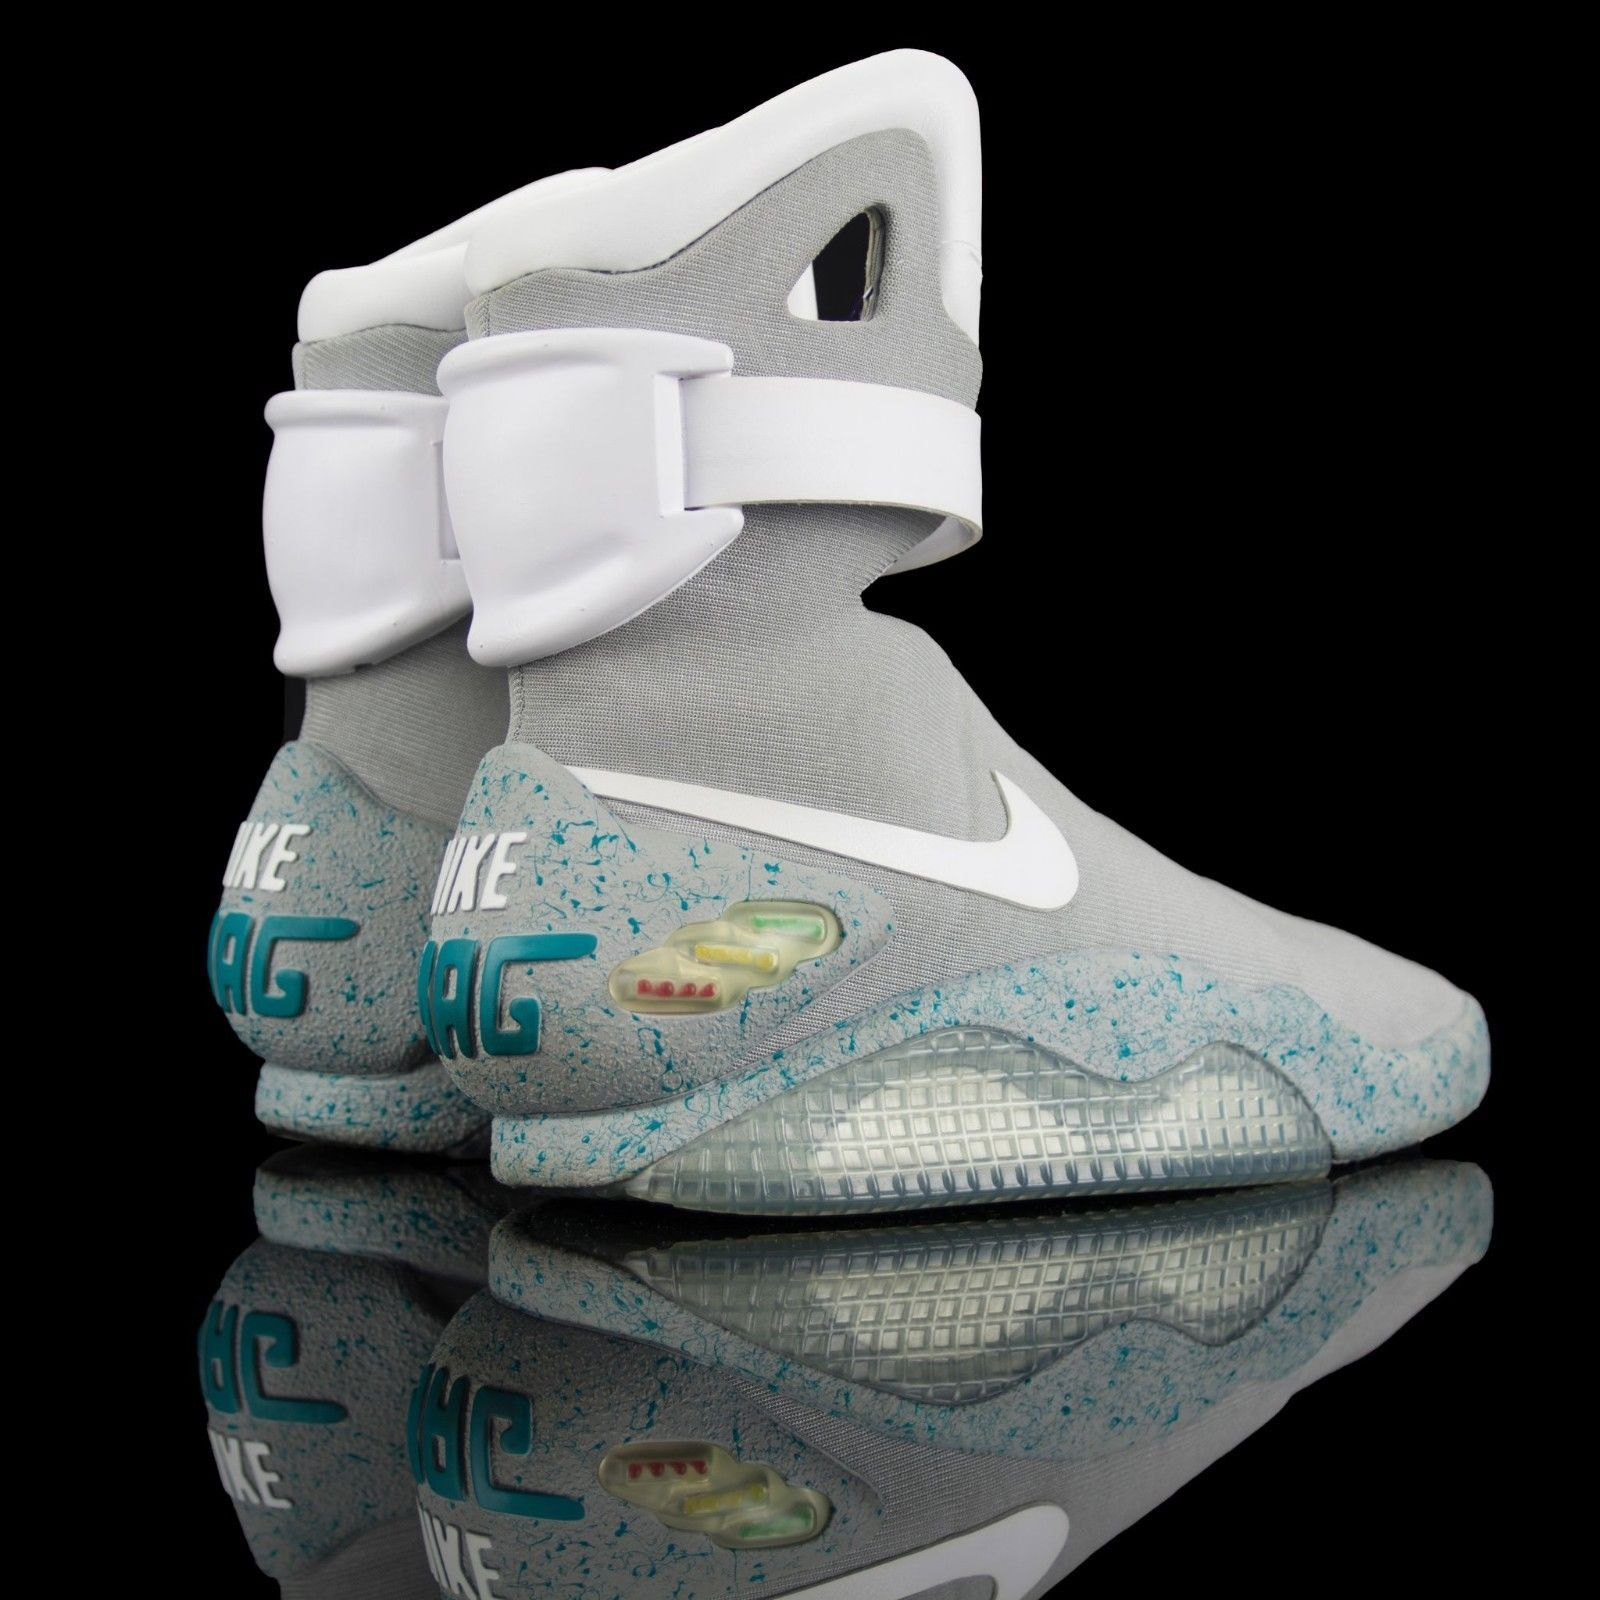 4d75e61a2d7e NIKE AIR MAG MARTY McFLY BACK TO THE FUTURE  550.0  nike  air  mag ...